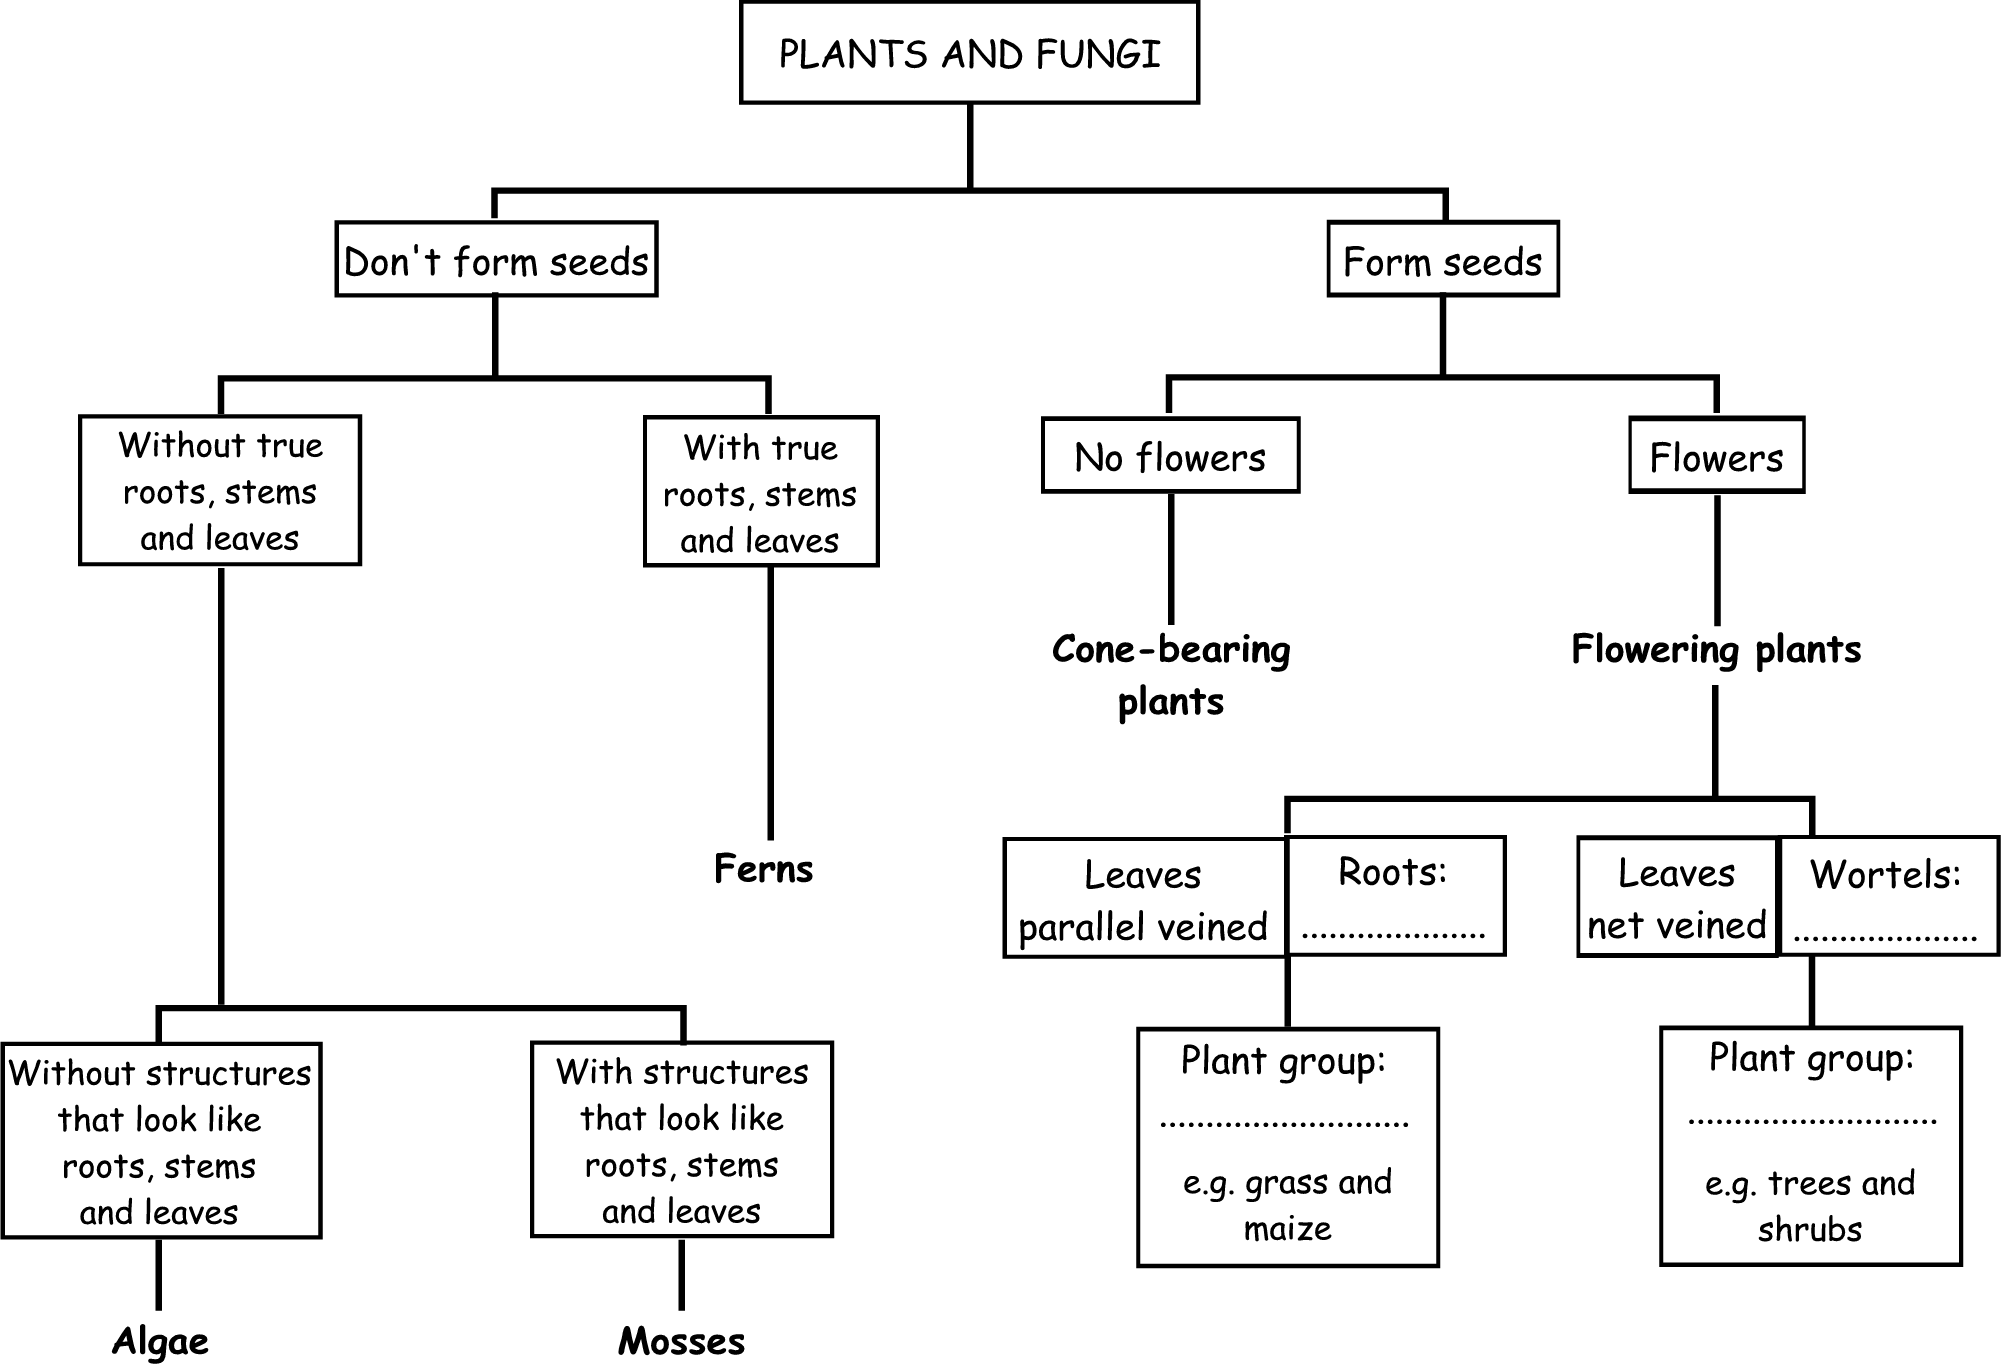 Plants And Fungi Flow Chart